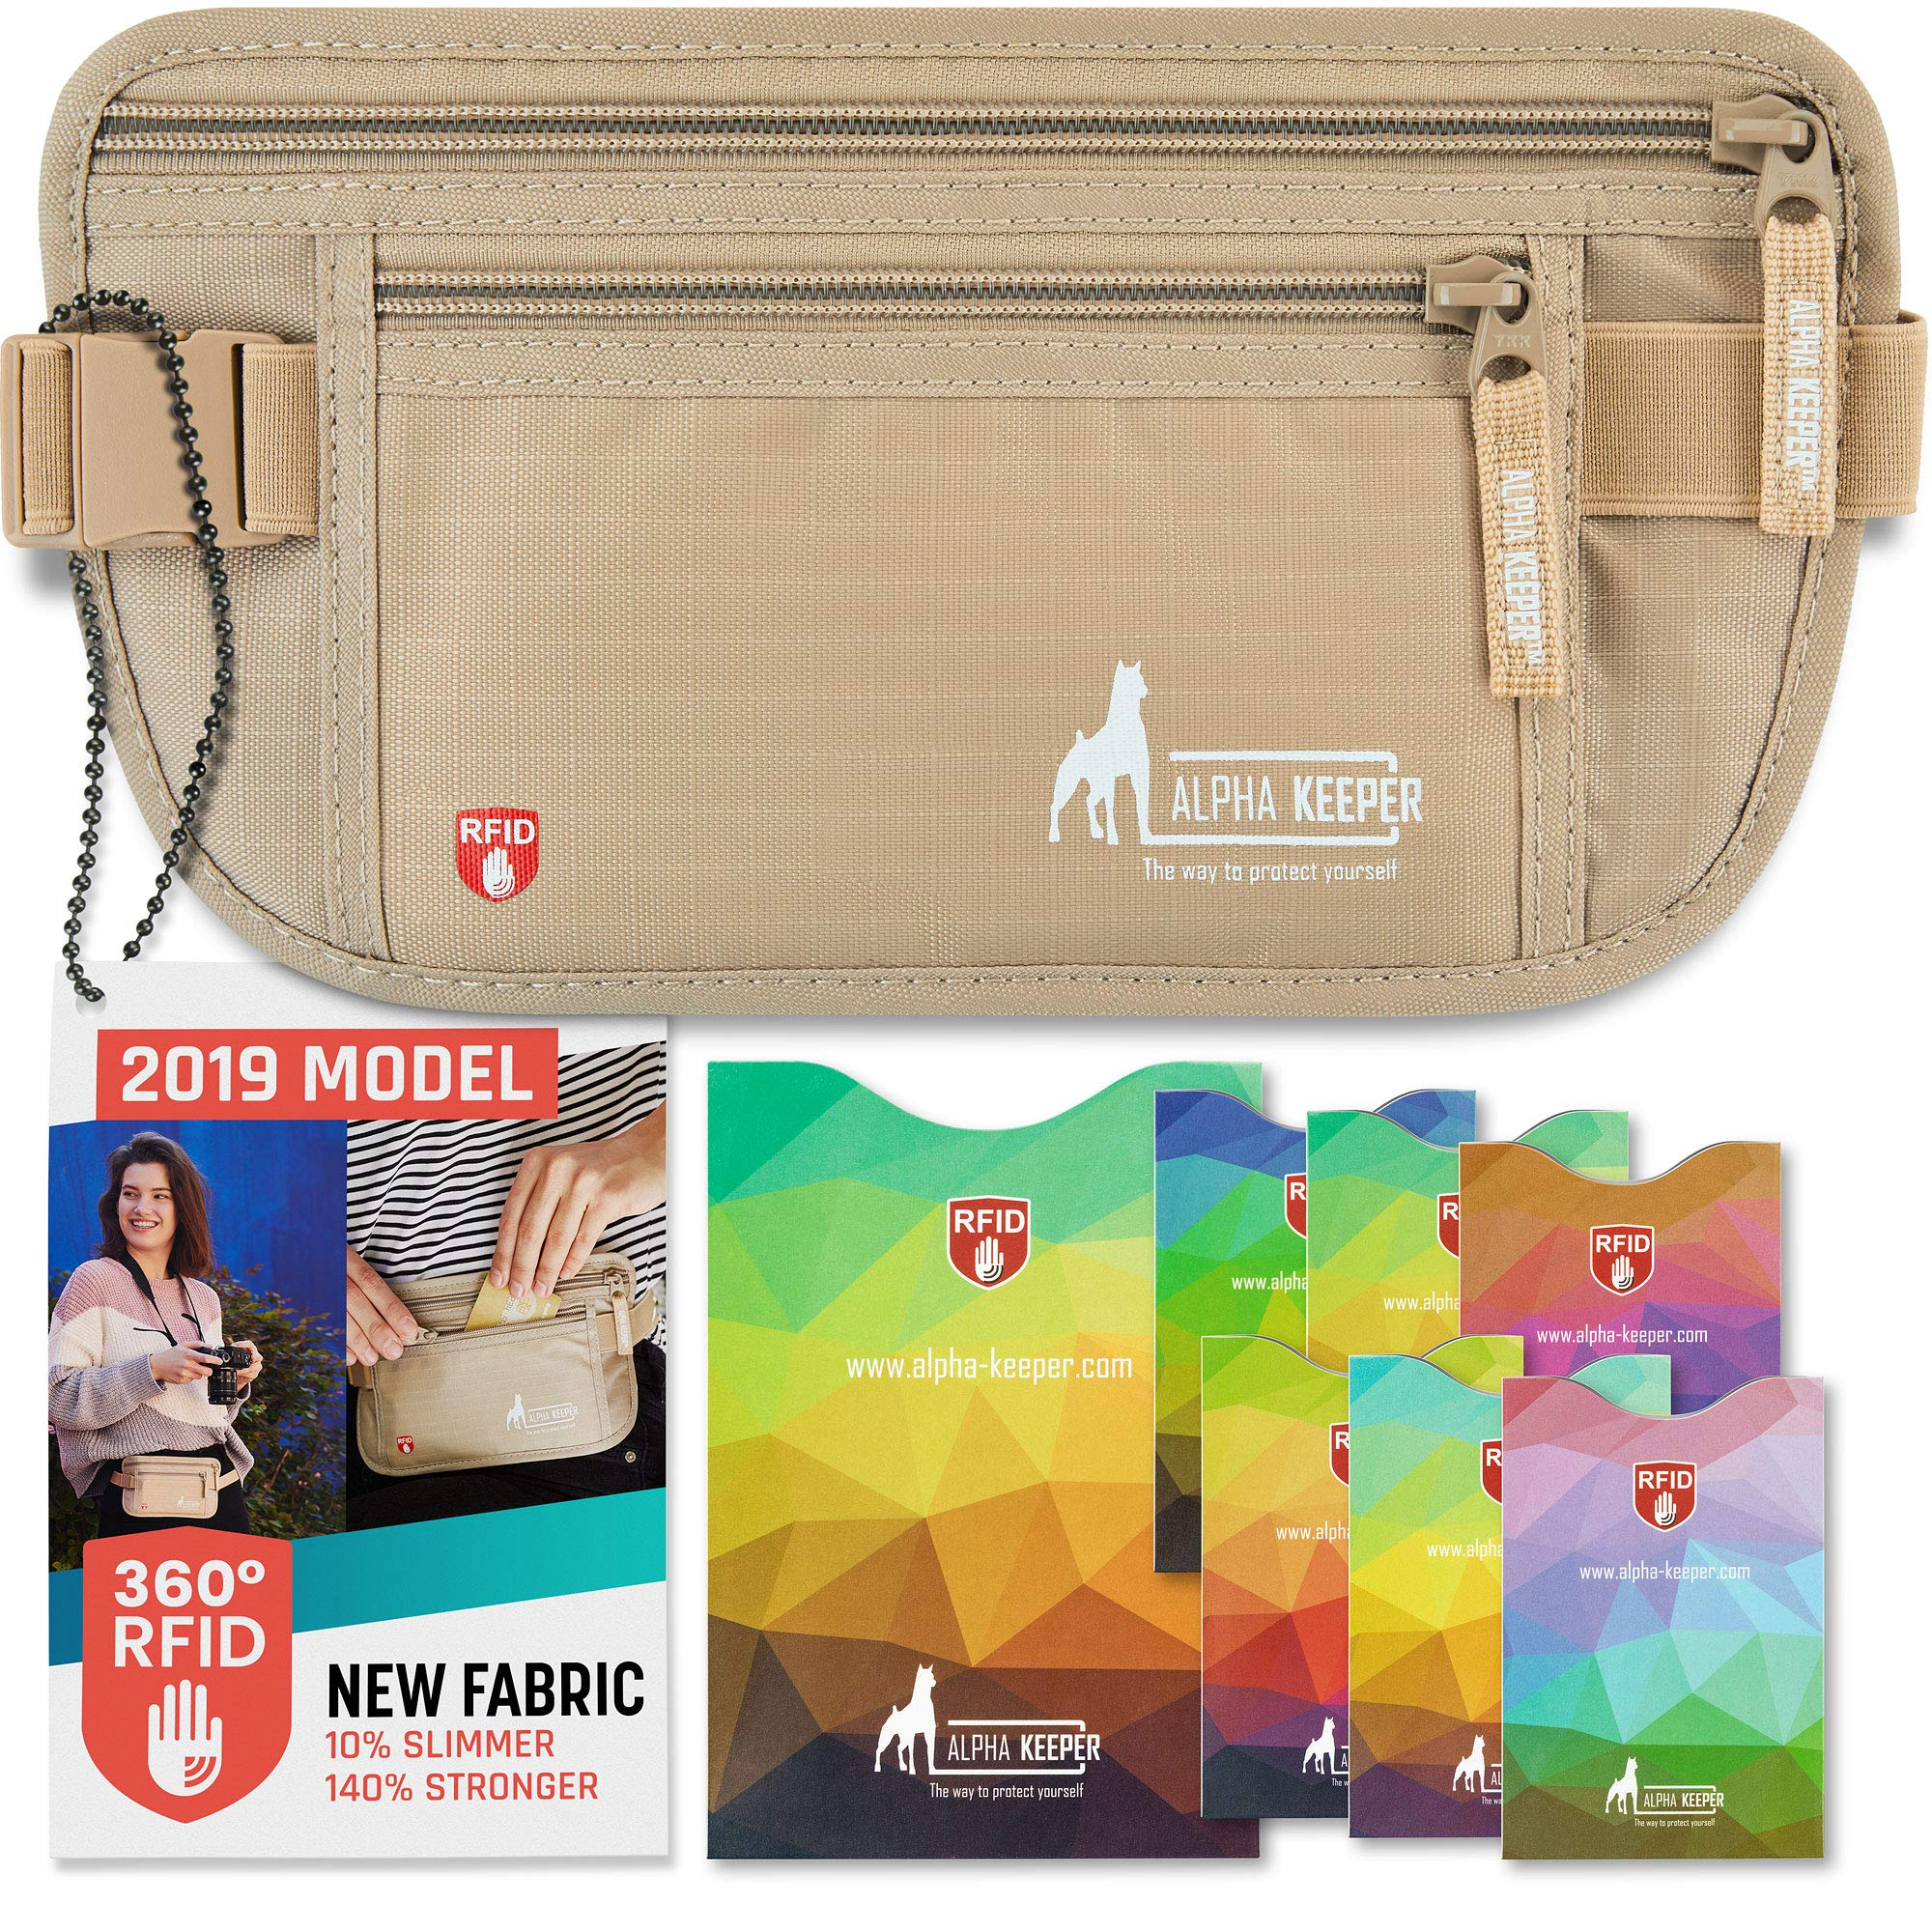 RFID Money Belt For Travel With RFID Blocking Sleeves Set For Daily Use [2019 NEW MODEL] by Alpha Keeper